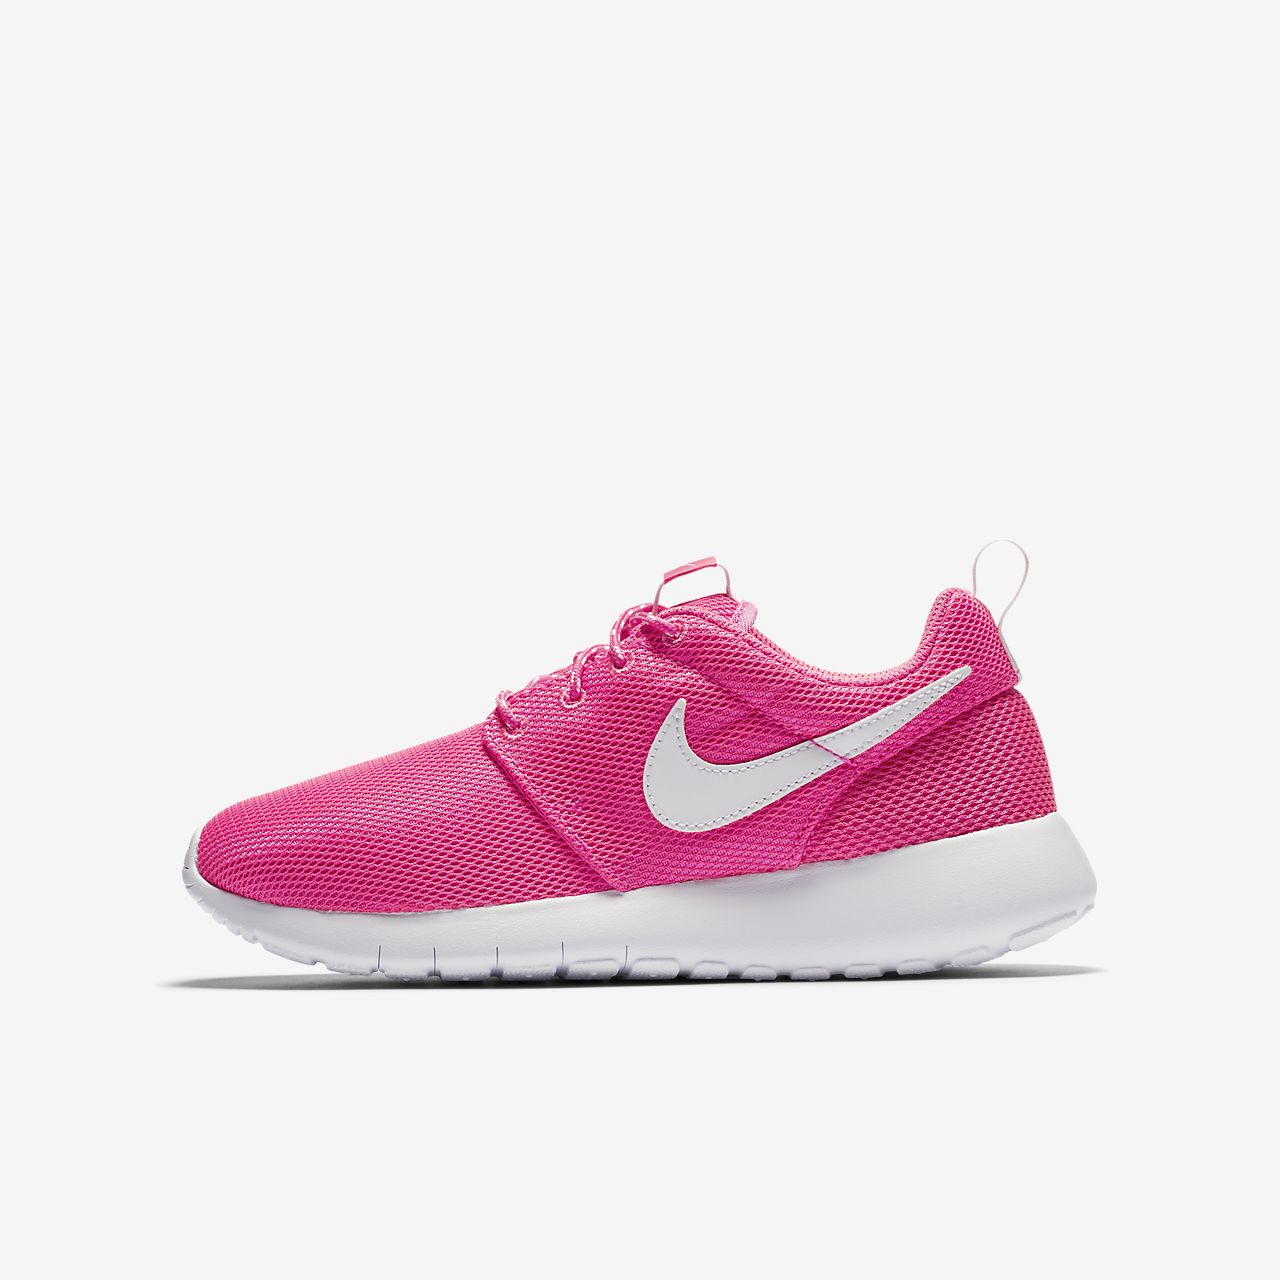 best cheap b0d64 248e0 Nike Roshe One Older Kids' Shoe. Nike.com GB